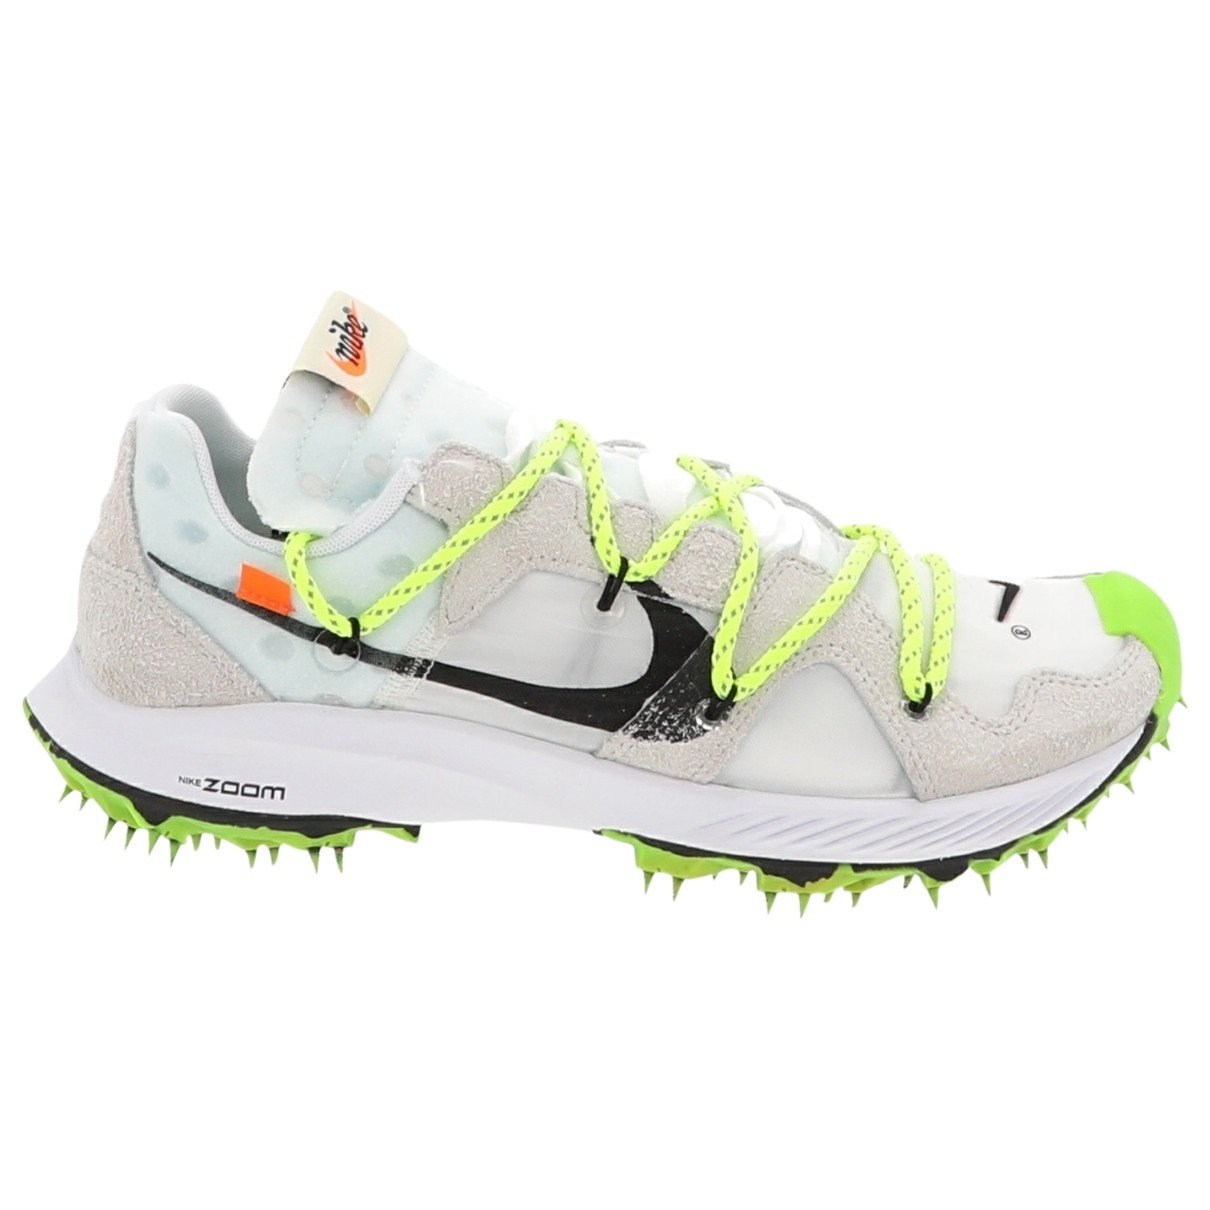 Nike X Off-white Zoom Terra Kiger 5 White Leather Trainers for Women 11.5 US